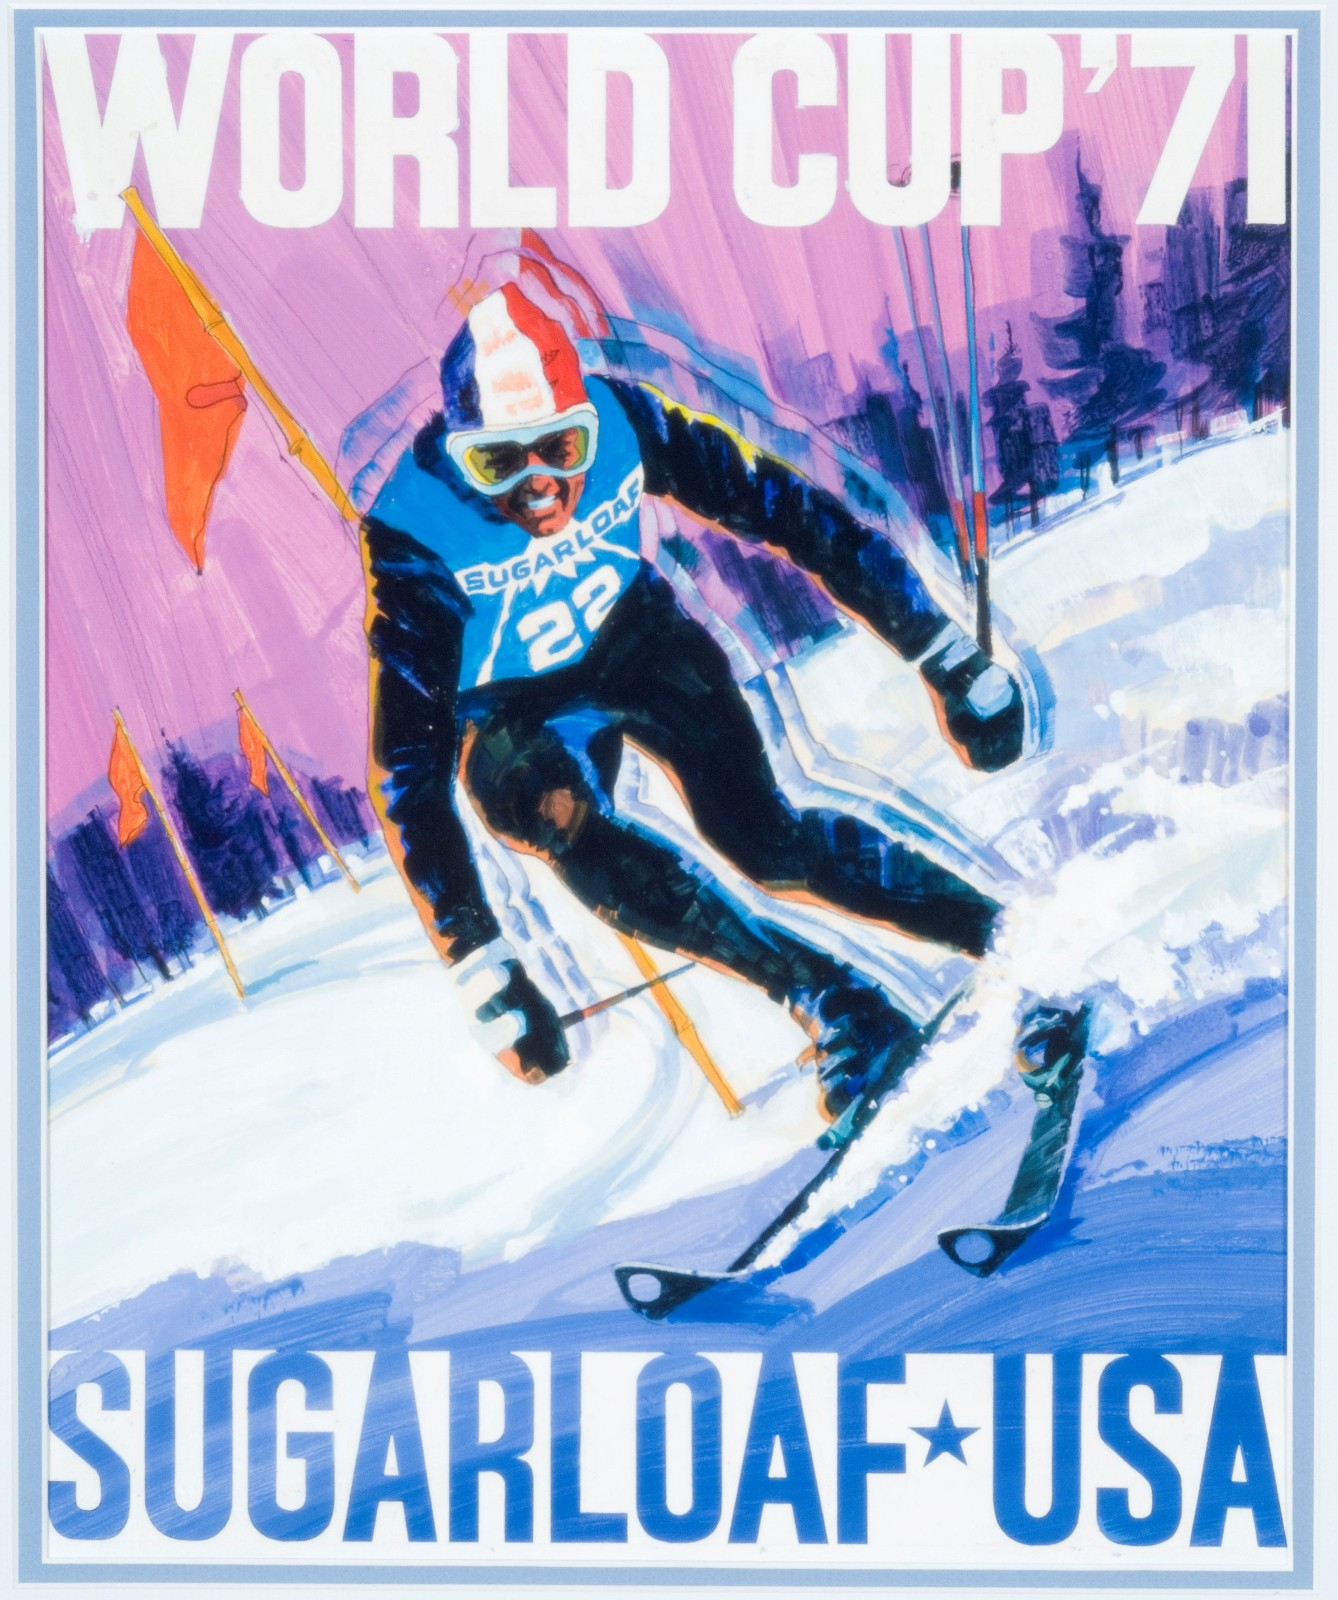 1971 World Cup Races at Sugarloaf